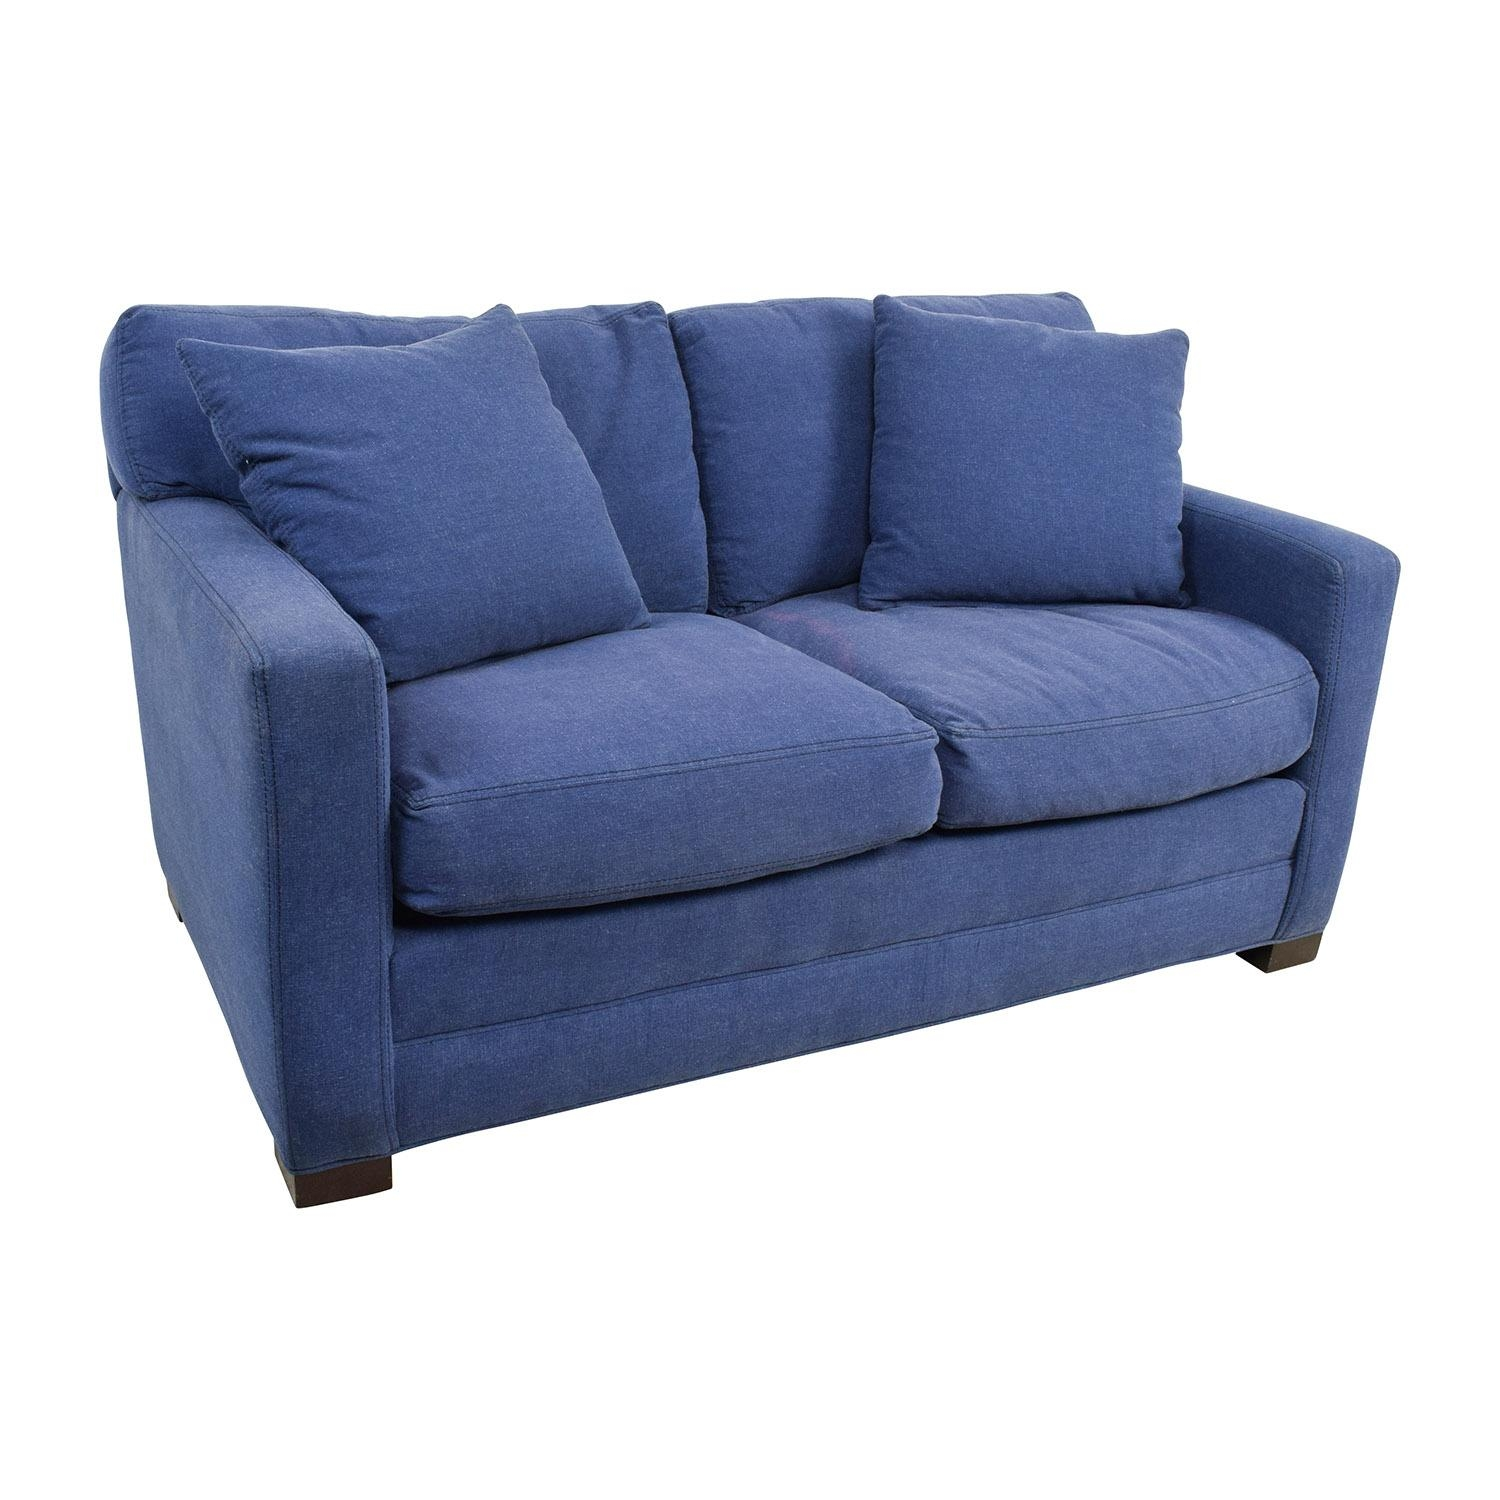 79% Off - Lee Industries Lee Industries Denim Blue Loveseat / Sofas throughout Denim Loveseats